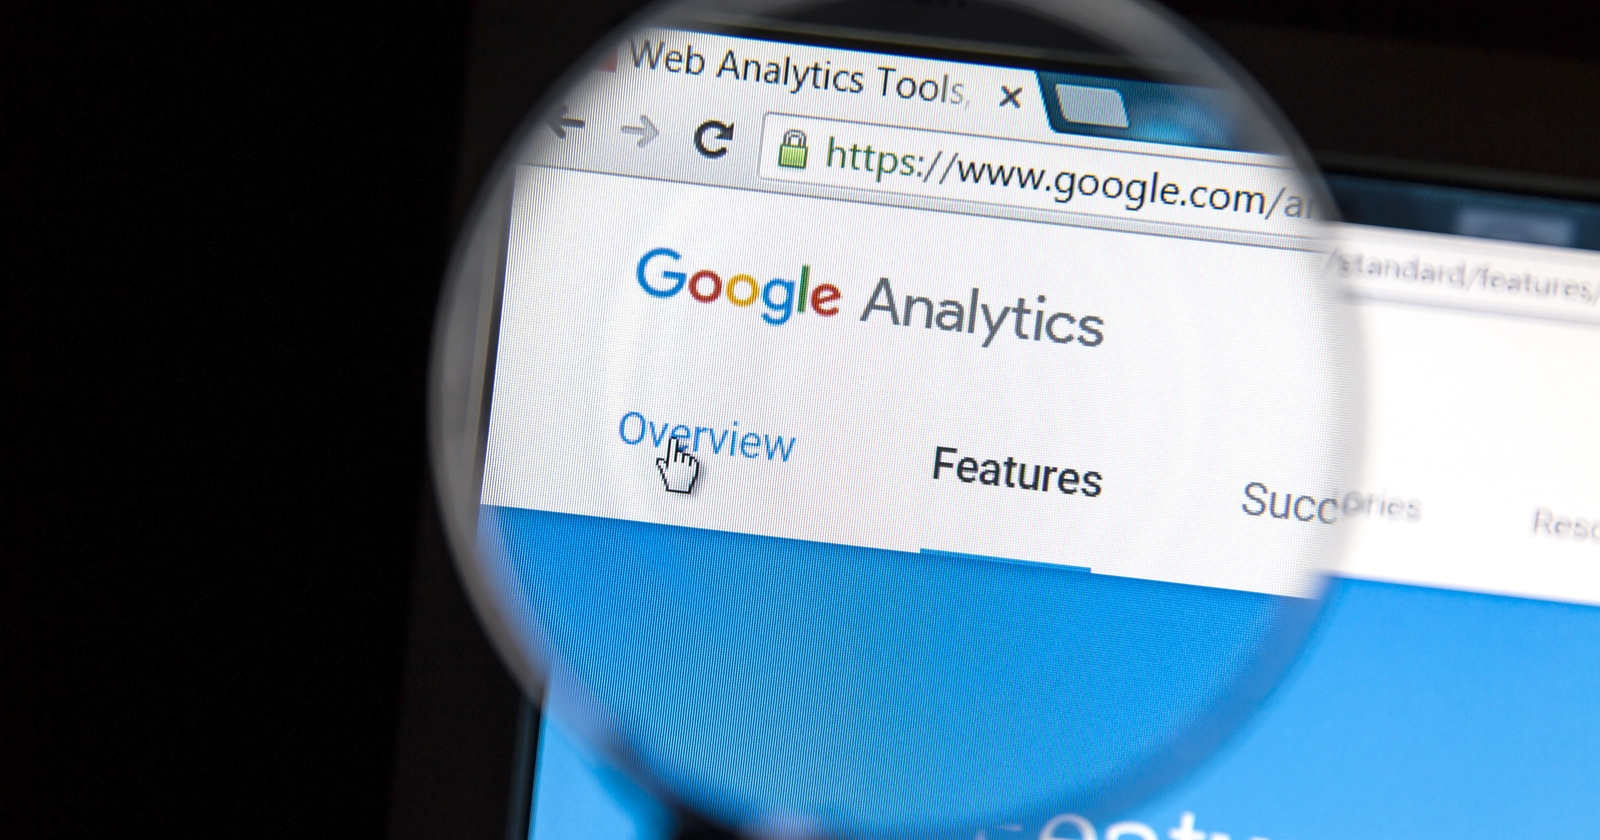 New Google Analytics Home Screen Now Available to 50% of Users by @MattGSouthern